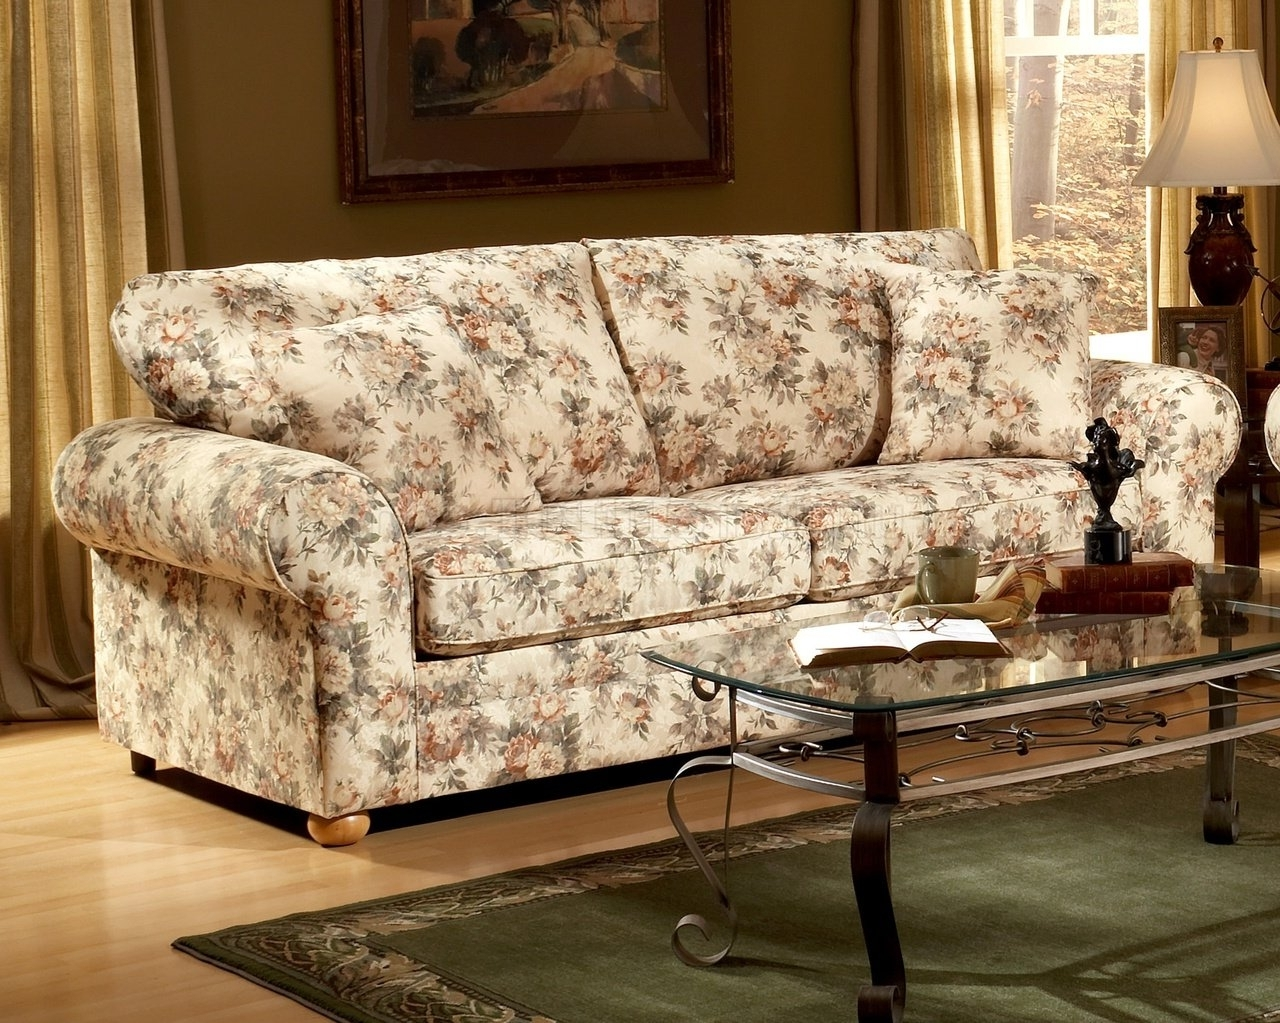 Pattern Fabric Traditional Sofa & Loveseat Set With Regard To Most Up To Date Traditional Sofas And Chairs (View 7 of 15)